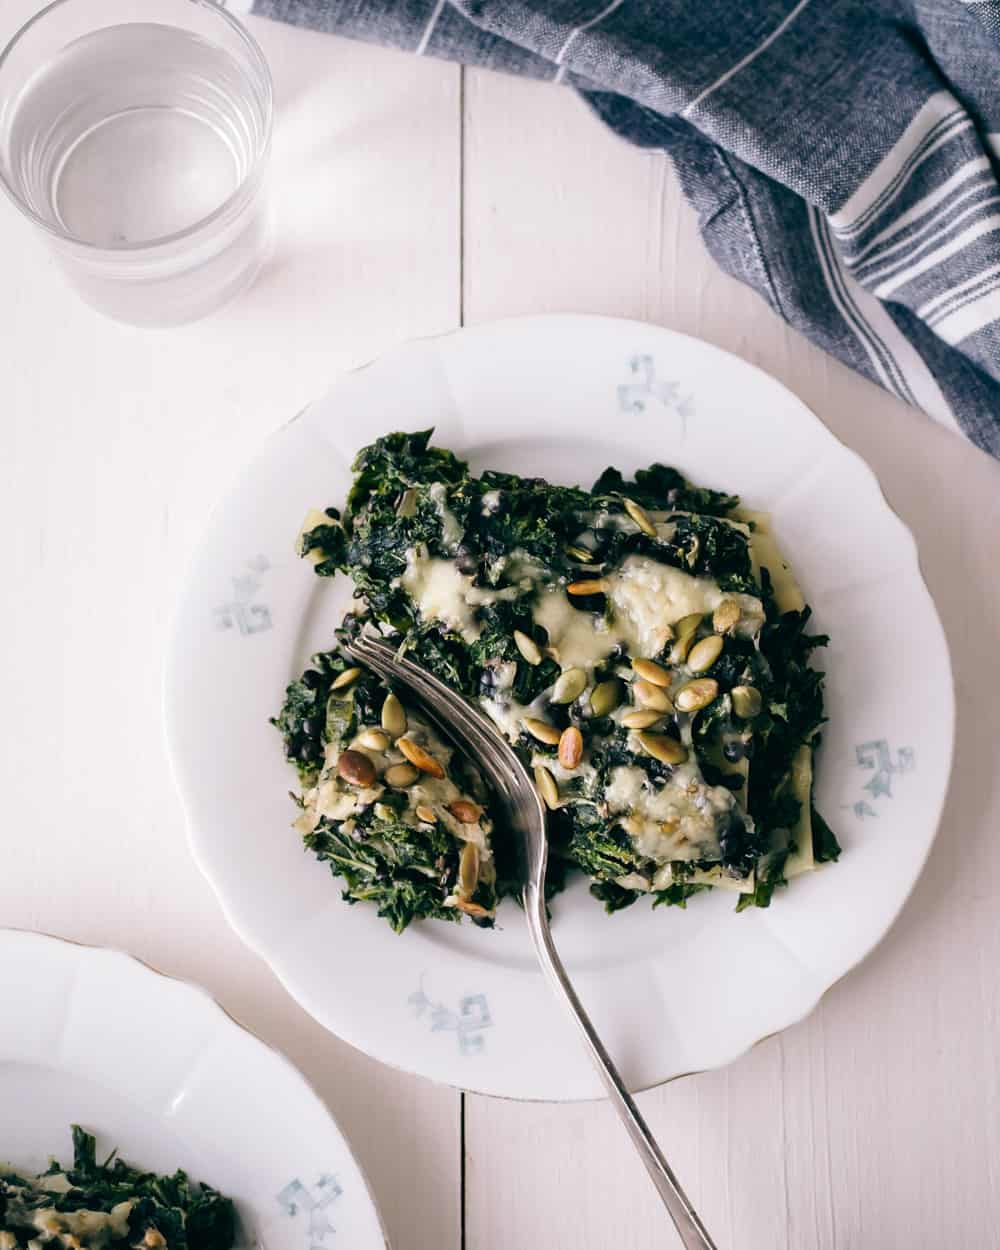 A plate with kale lasagna topped with pumpkin seeds